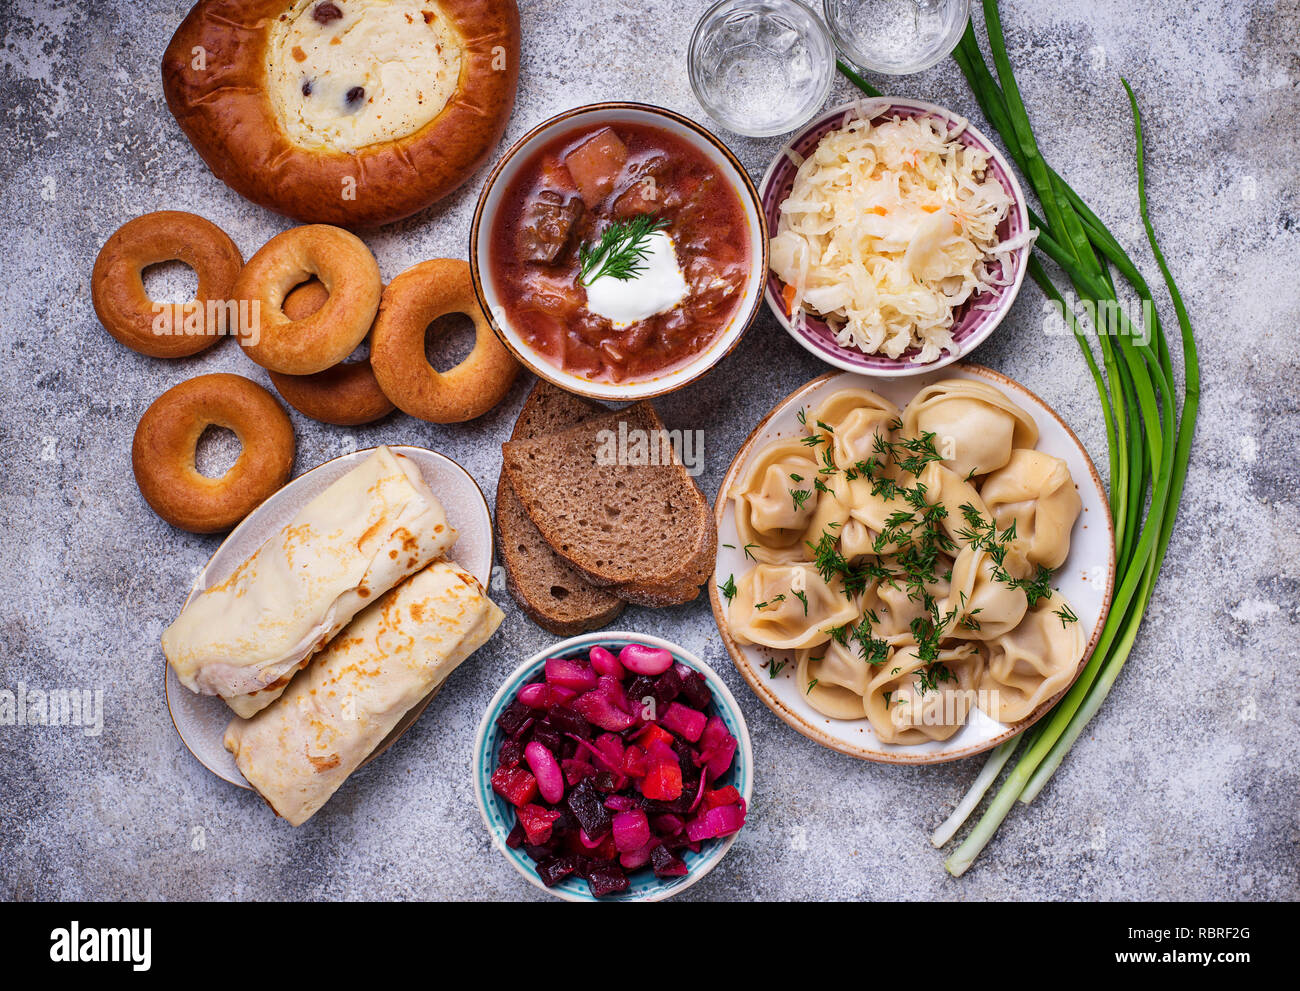 Traditional Russian dishes, sweets and vodka - Stock Image